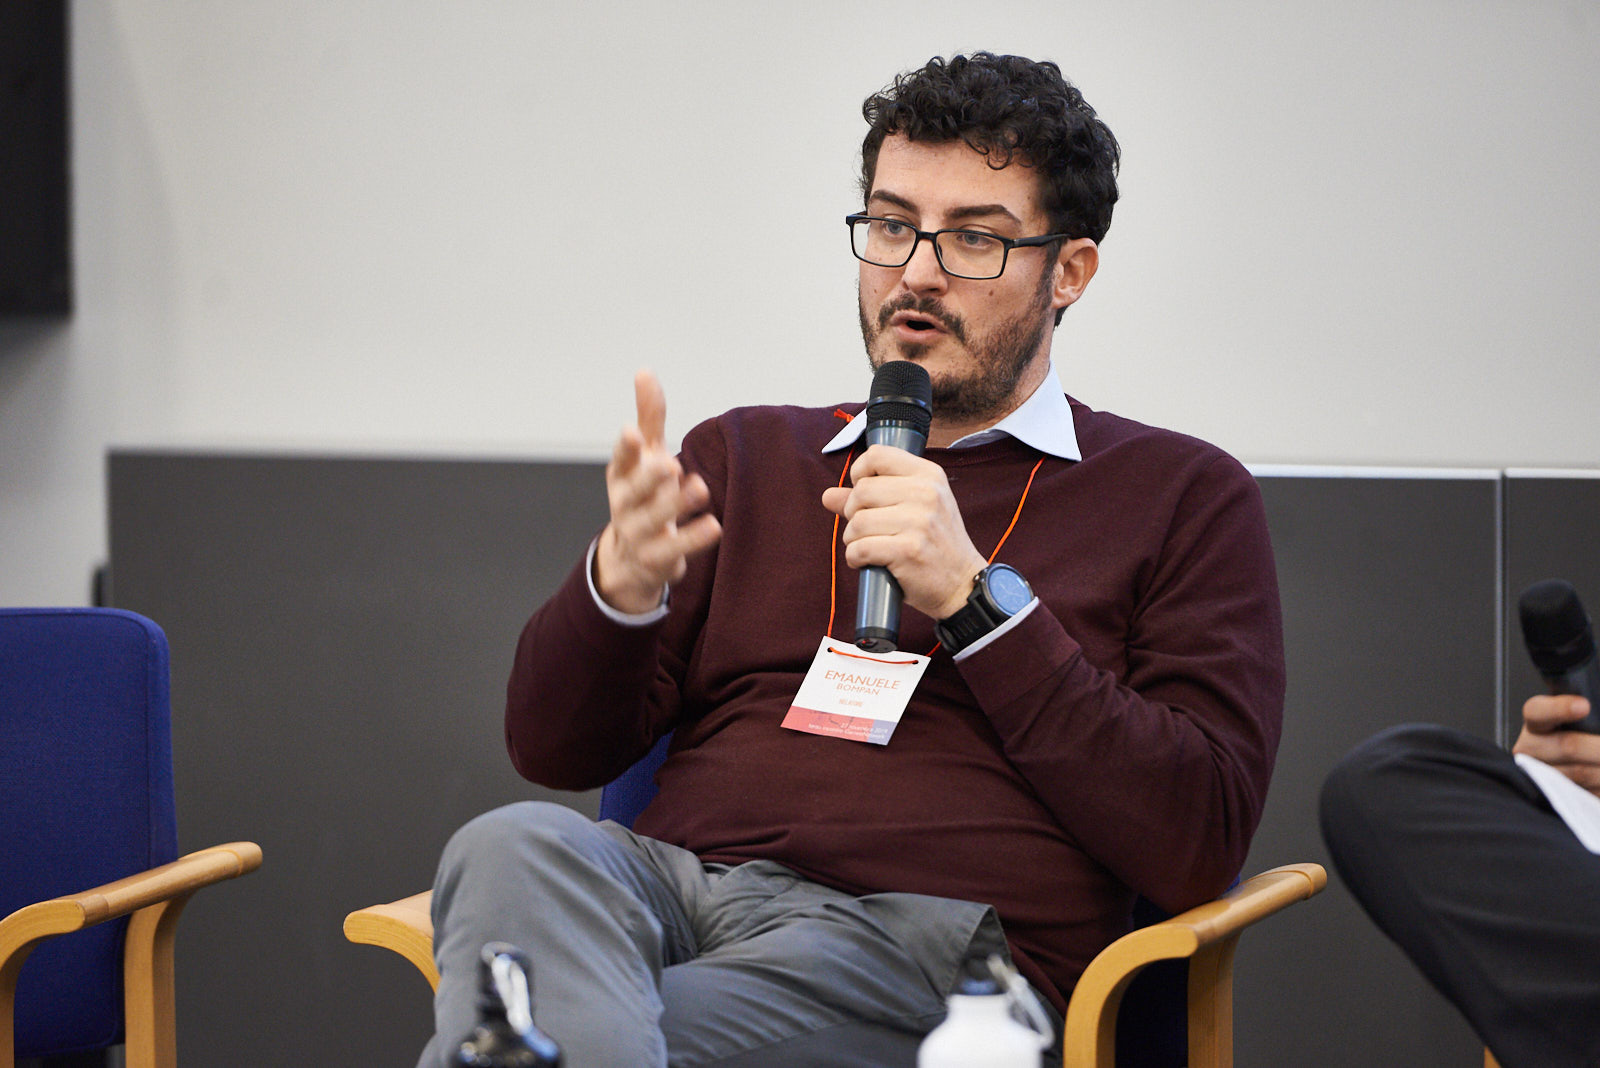 Emanuele Bompan, environmental journalist and geographer, for the environmental panel. Theme: Climate change and human rights. Being Righteous for the Environment